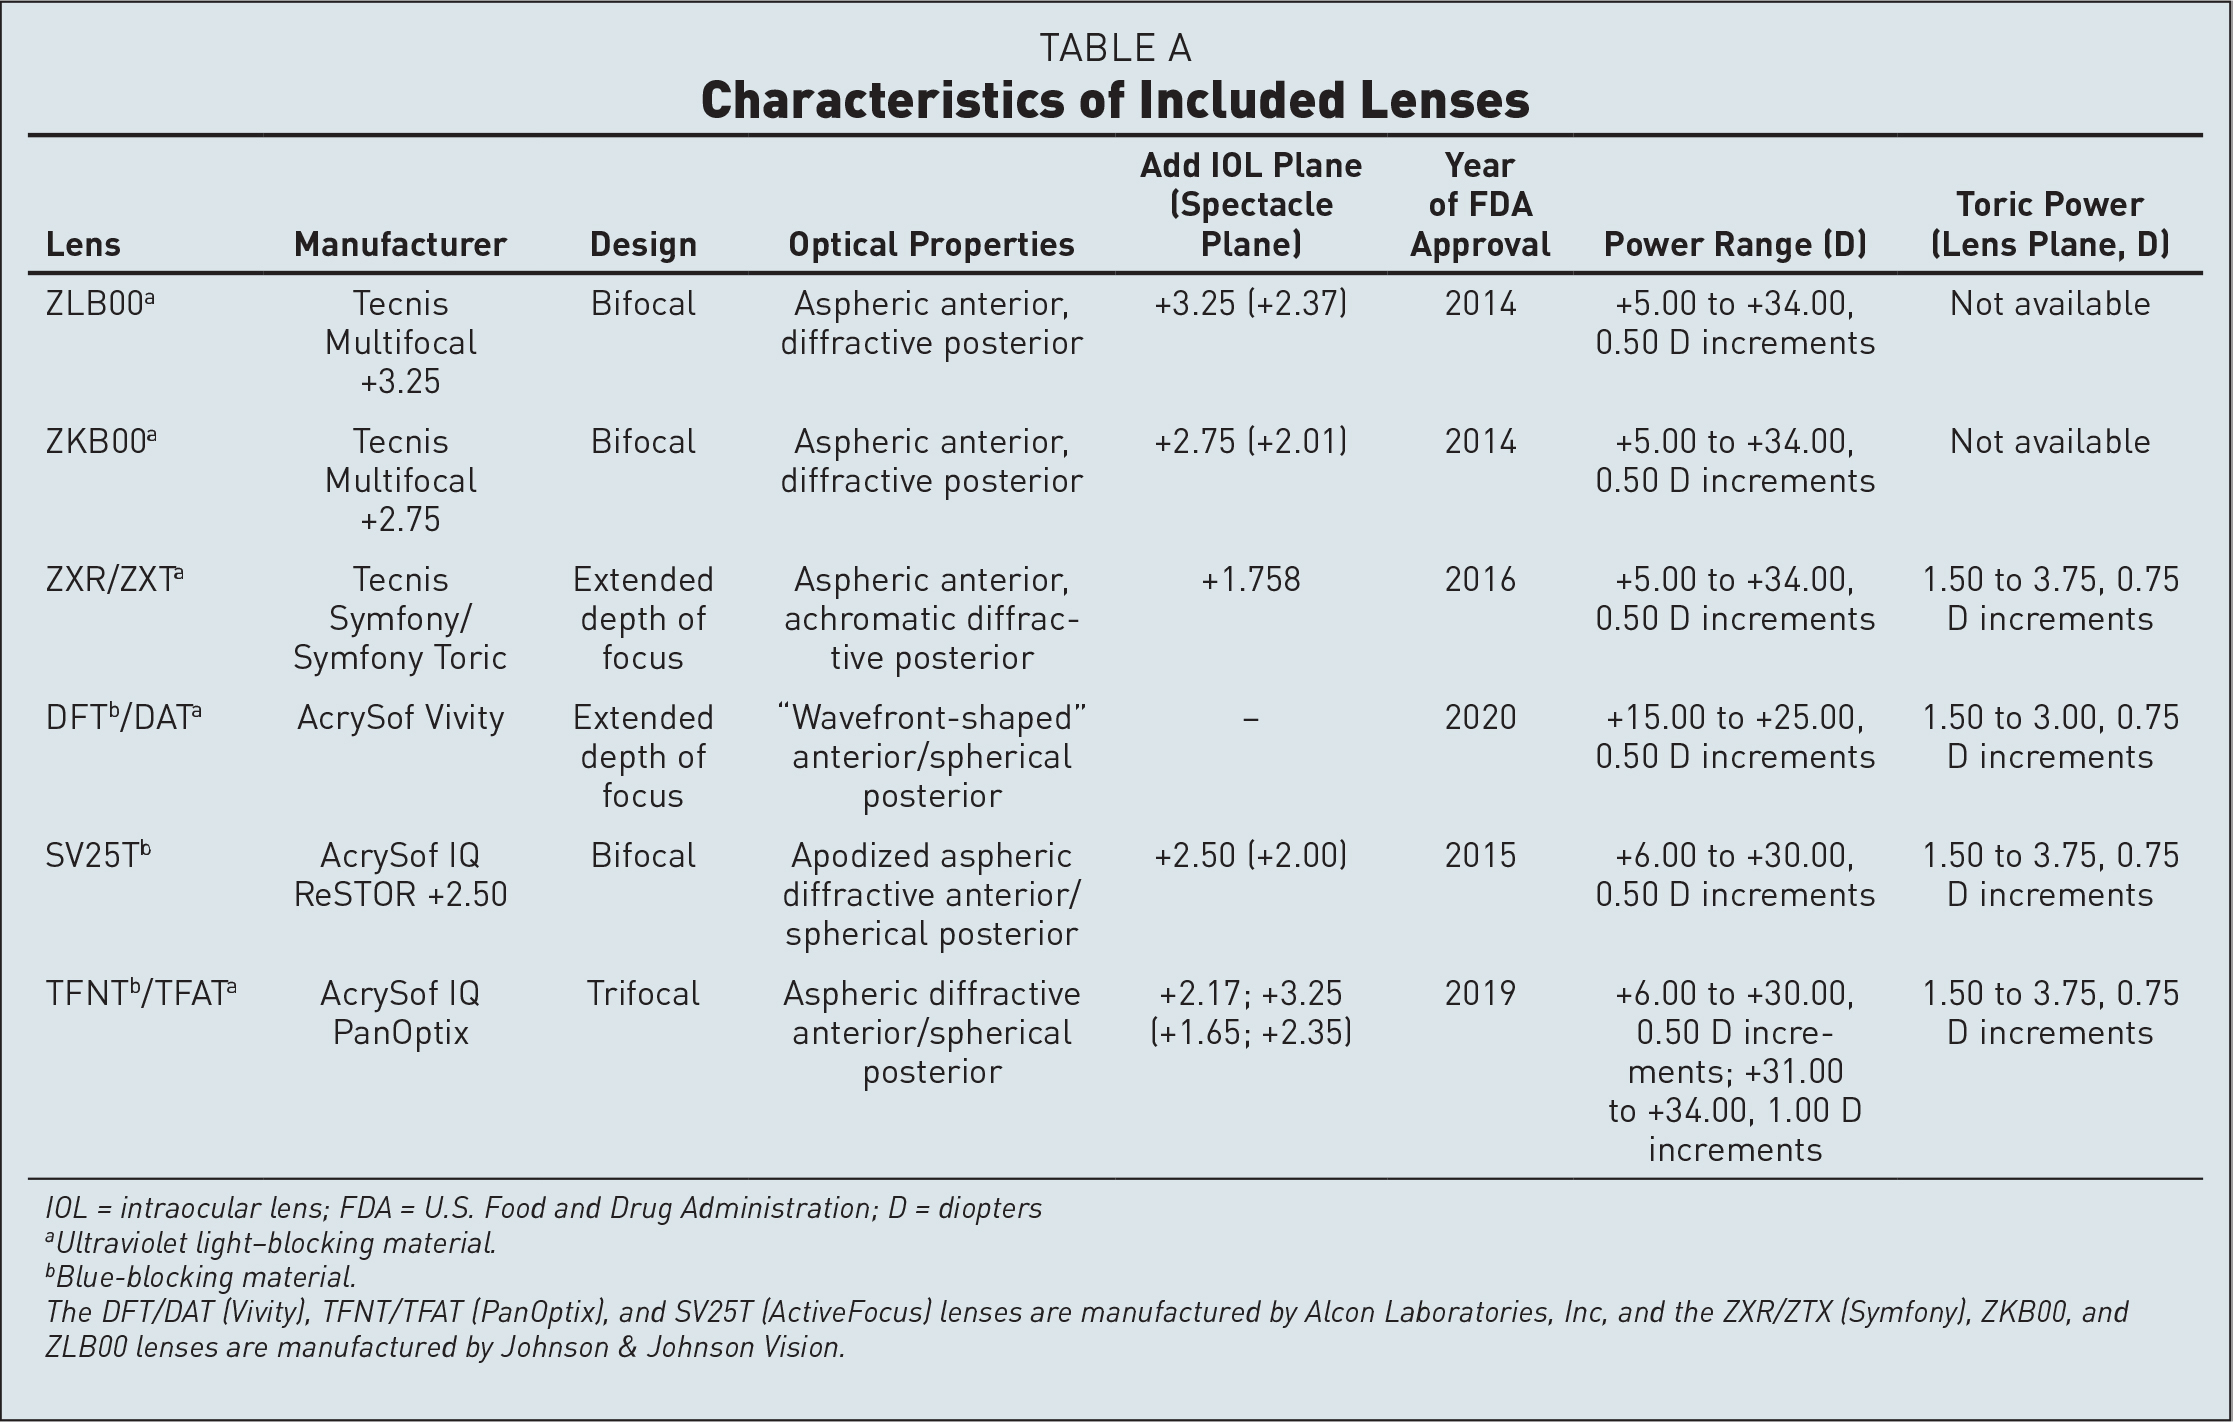 Characteristics of Included Lenses